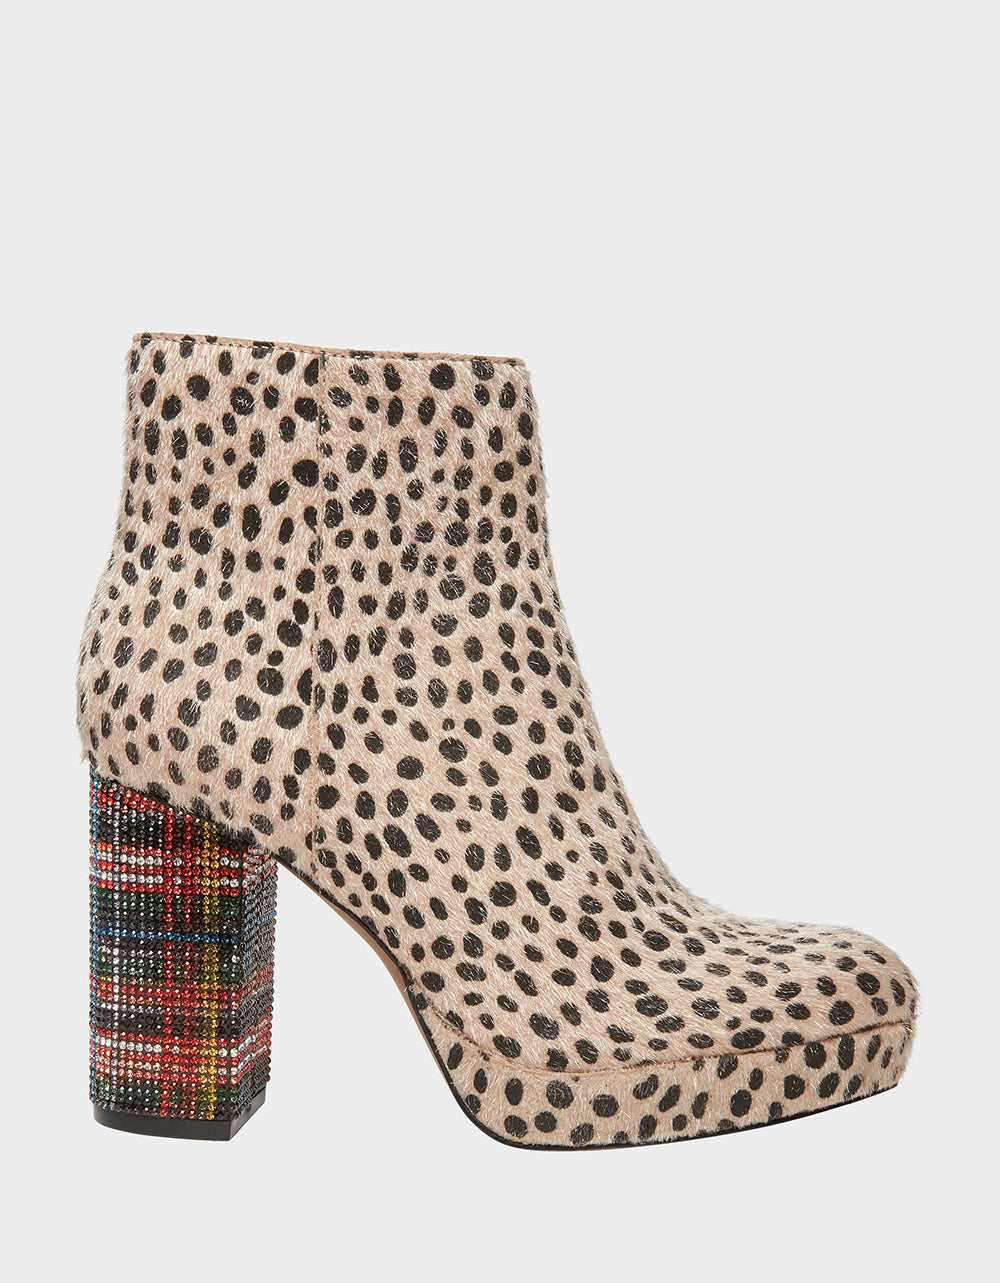 DOWNIE LEOPARD MULTI - SHOES - Betsey Johnson